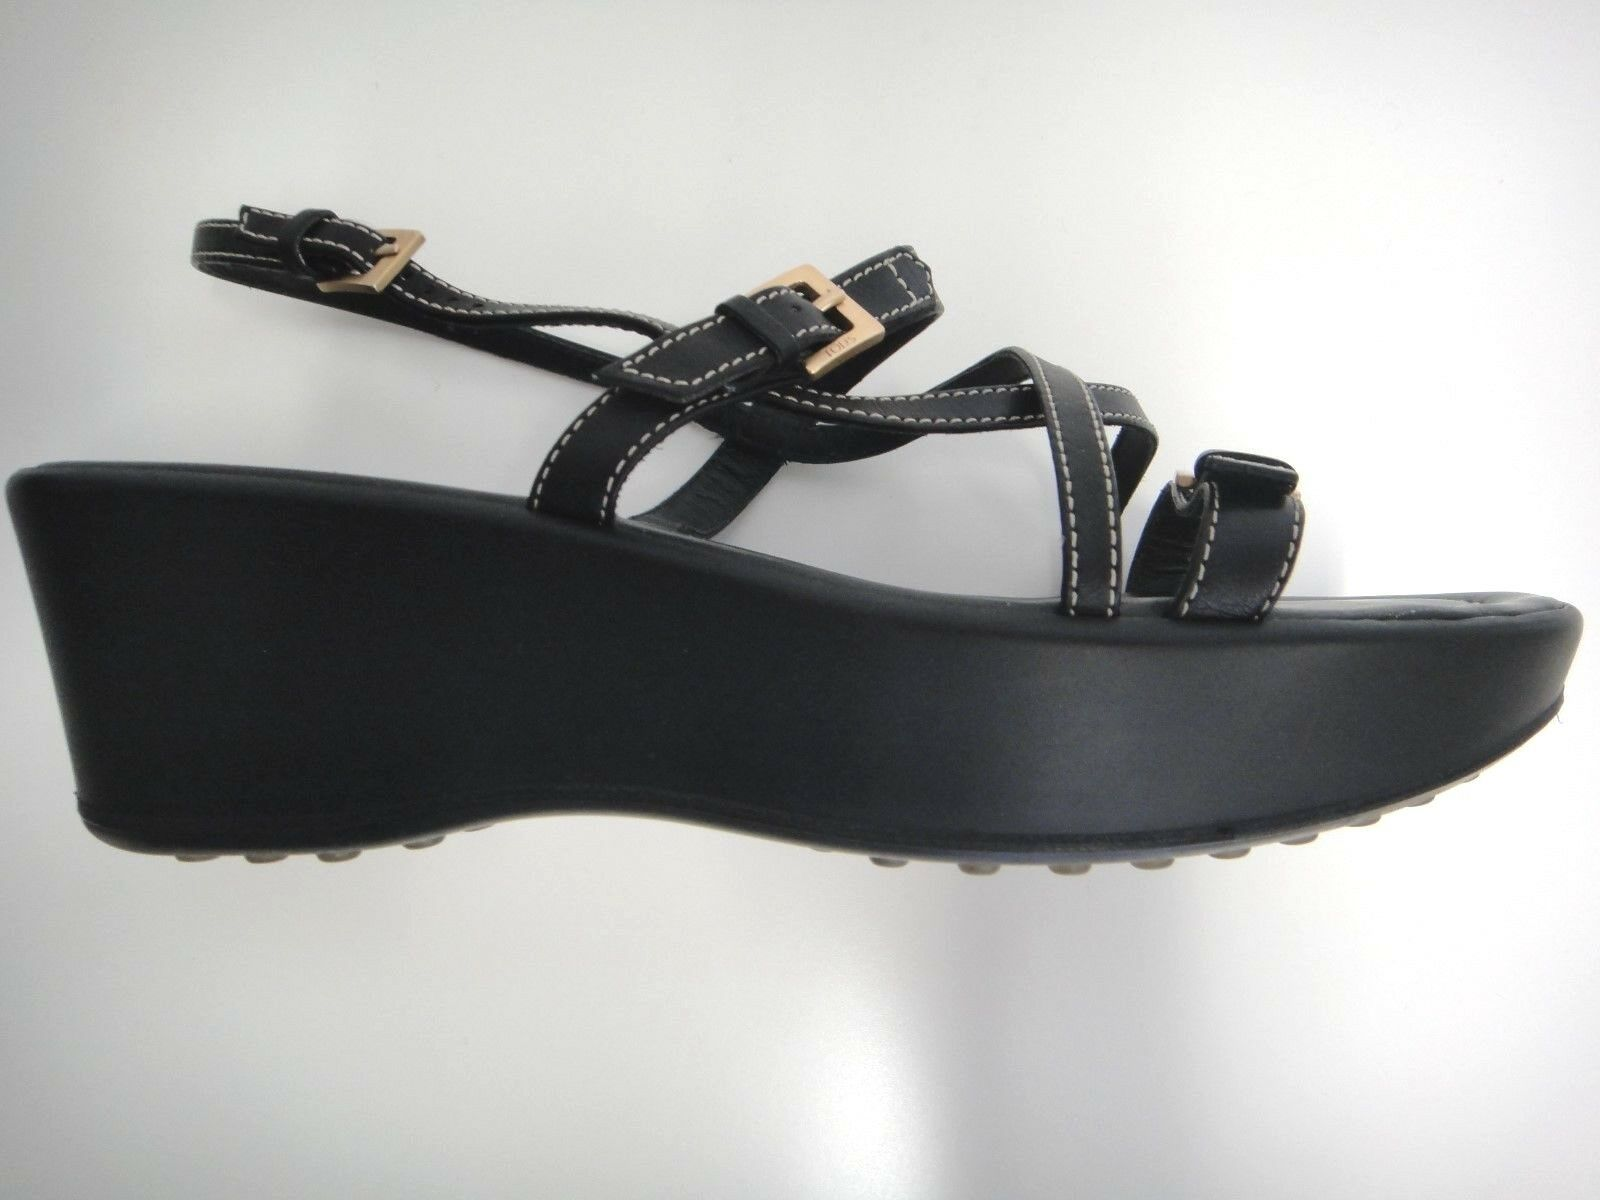 TOD'S Design Platform fits US9 schwarz comfortable  good cond 450 value Deal